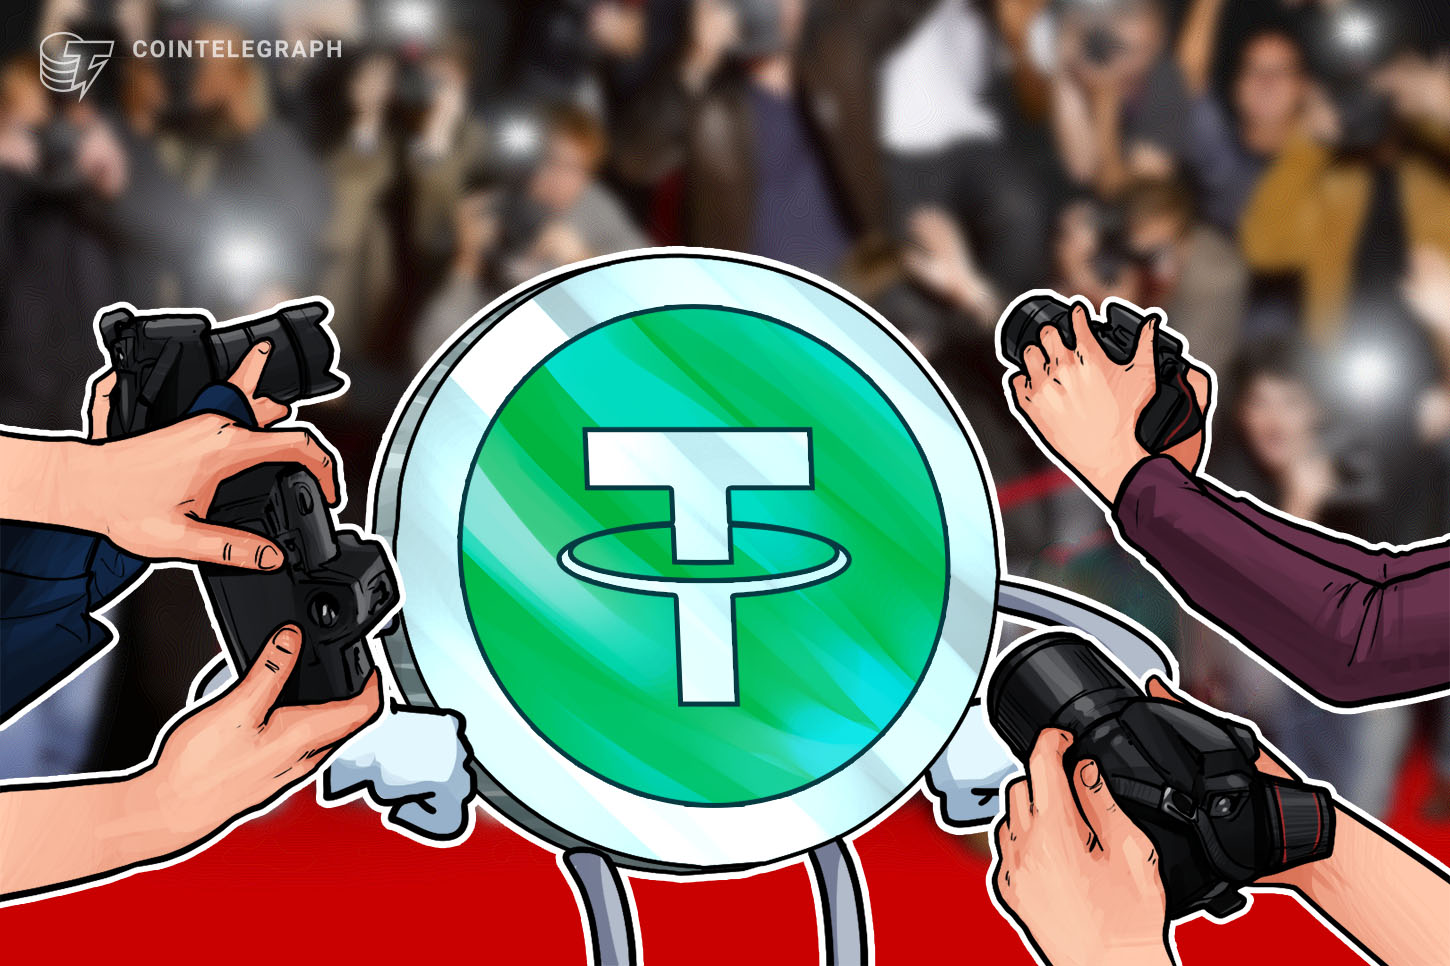 Tether fires back against report it is using reserves for investments and making crypto-backed loans